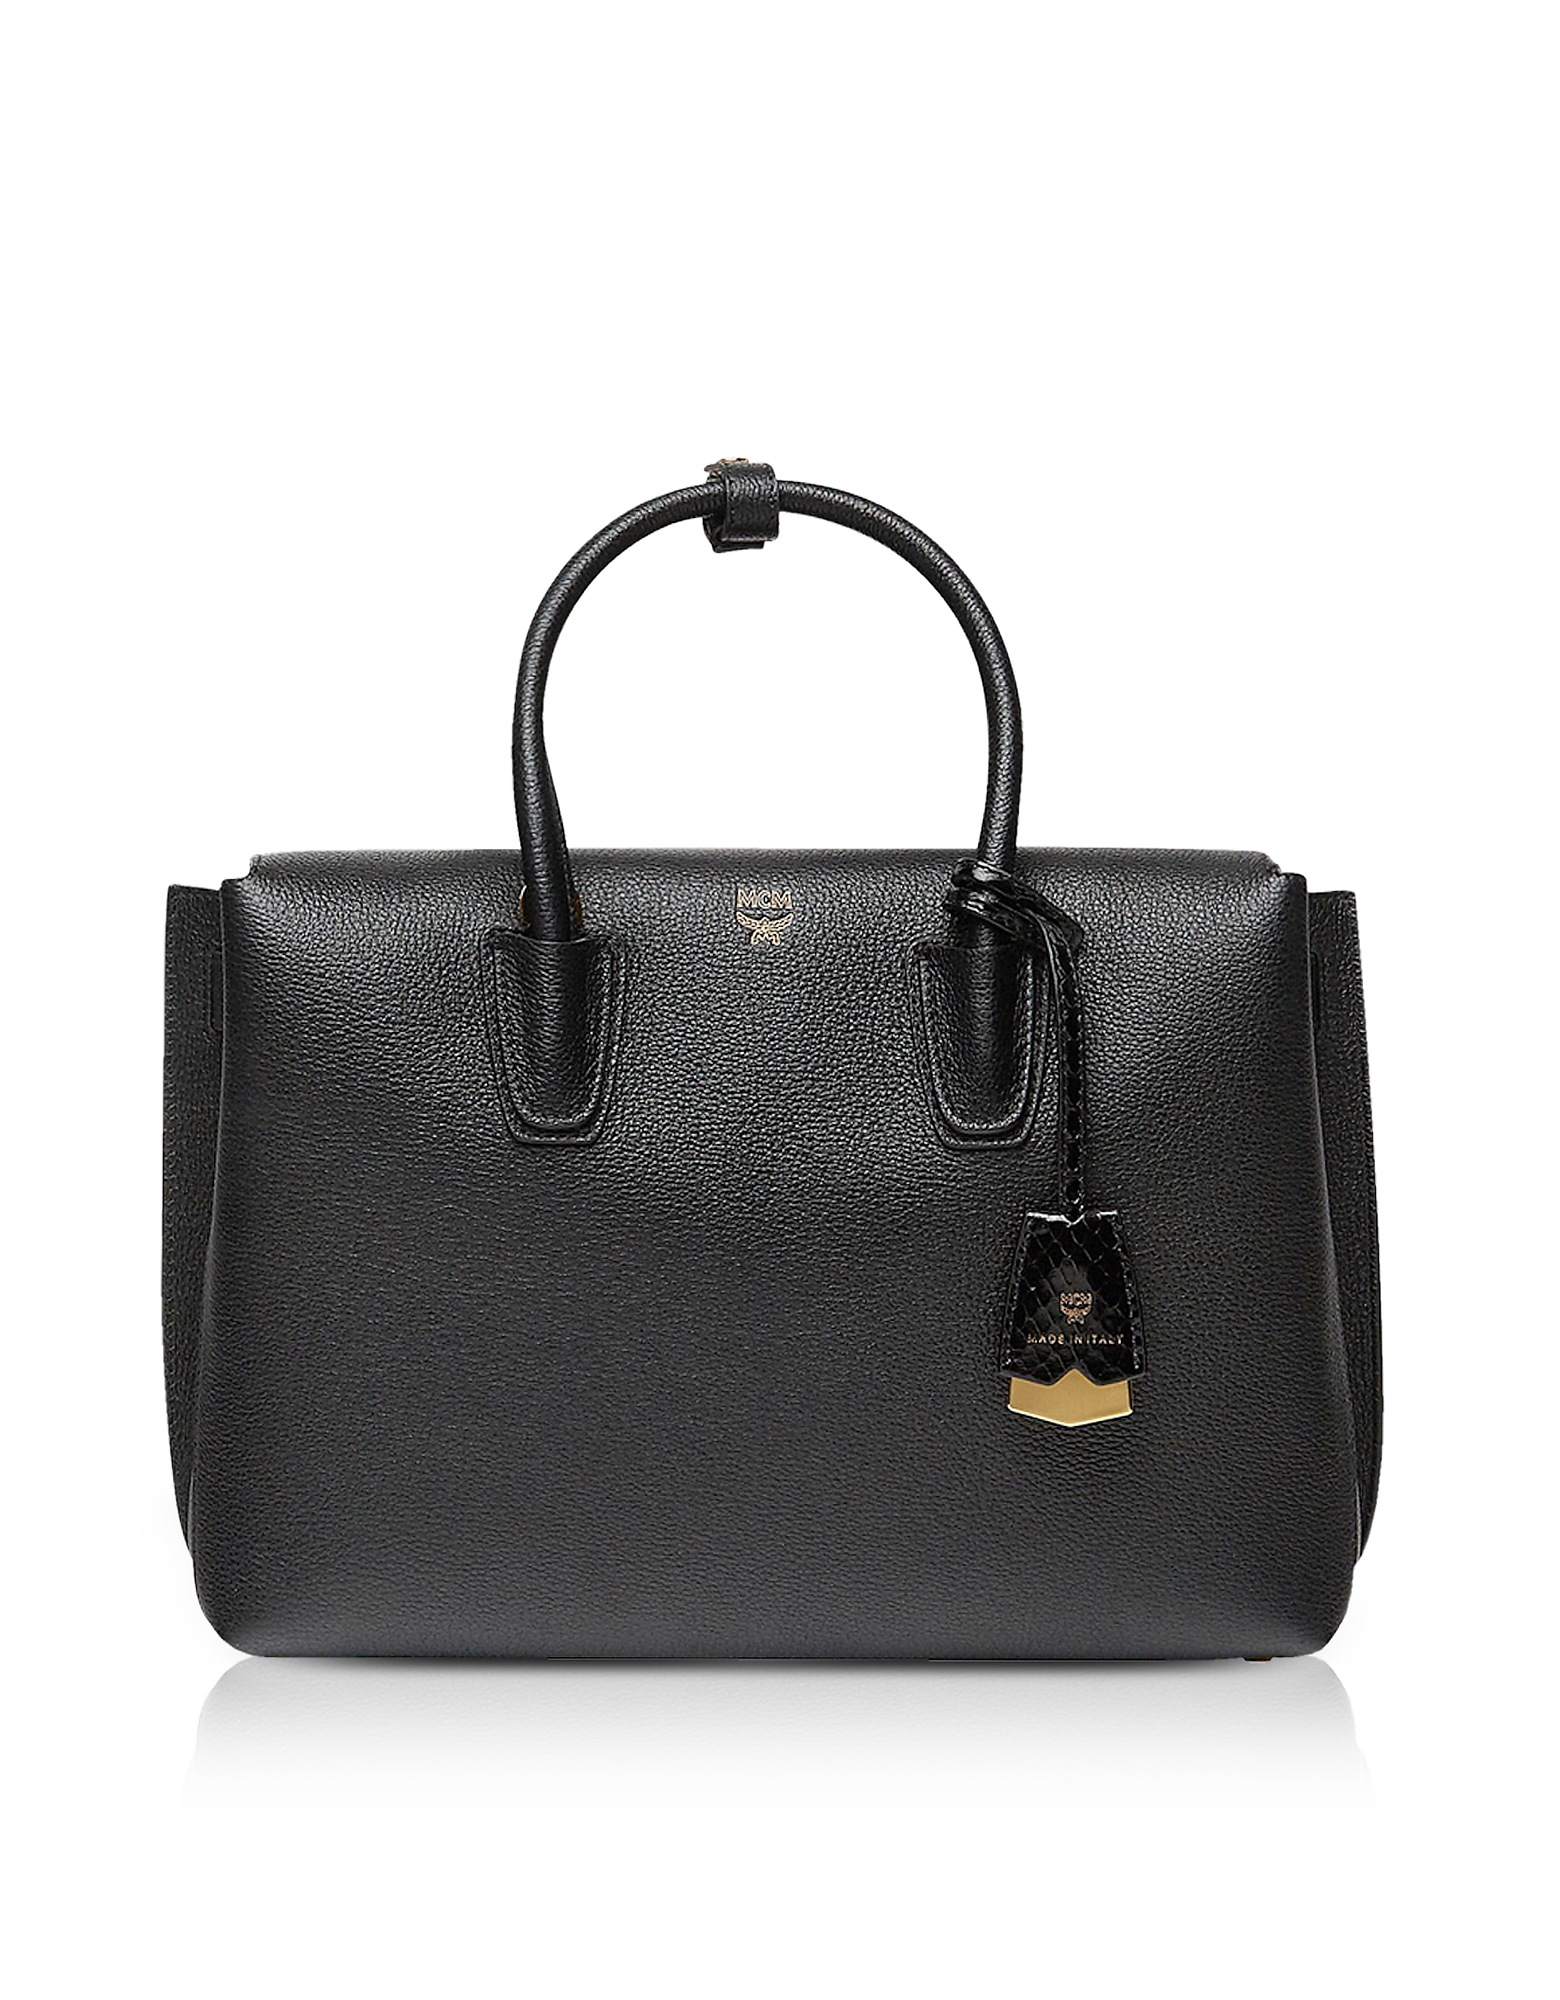 MCM Handbags, Black Grained Leather Milla Medium Tote